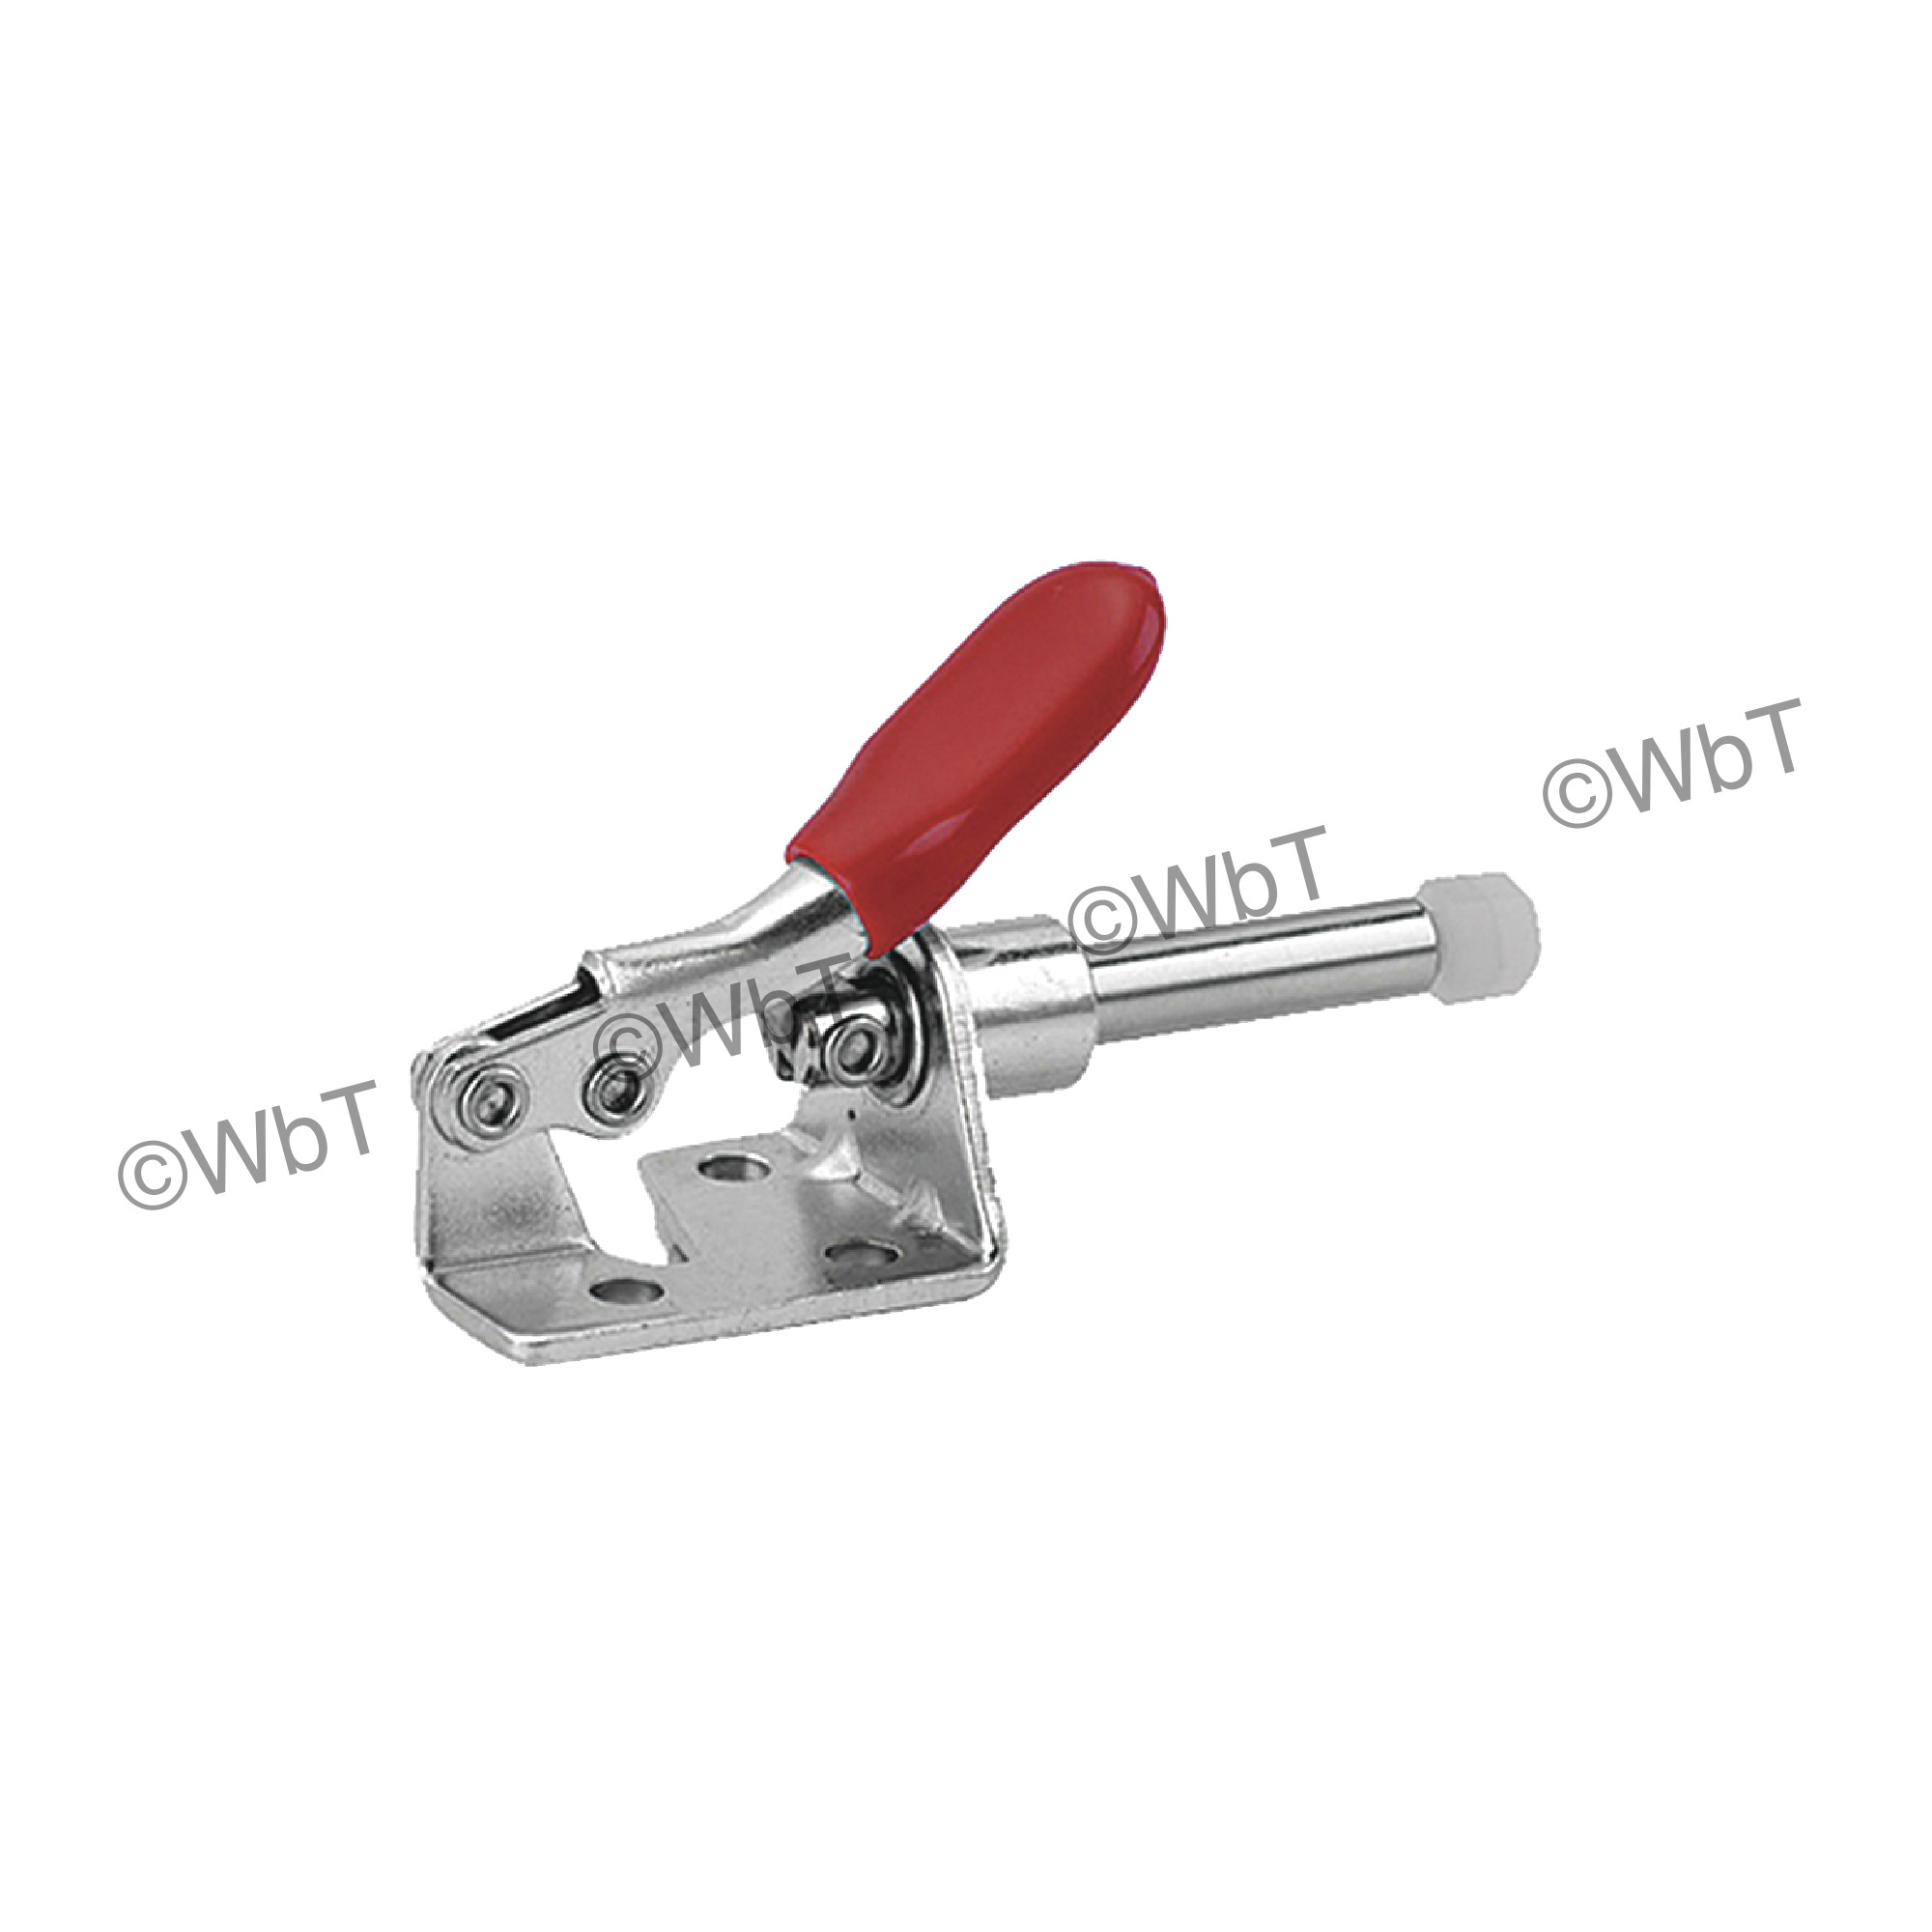 Straight Line Action Toggle Clamp